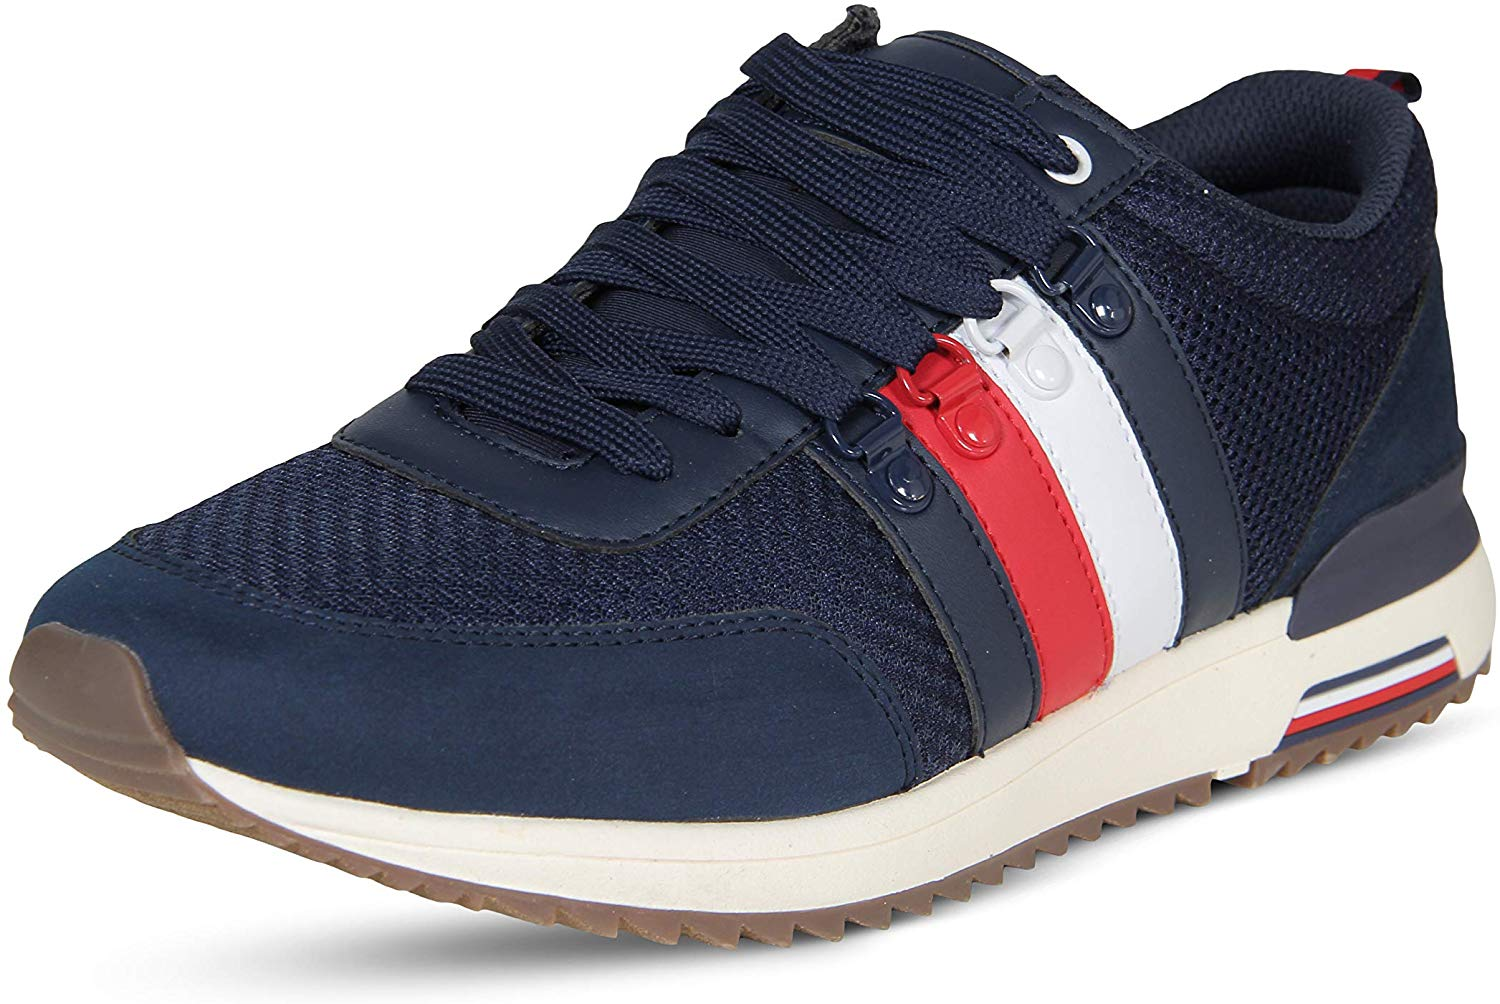 Amazon.com: Tommy Hilfiger Vandito: Shoes